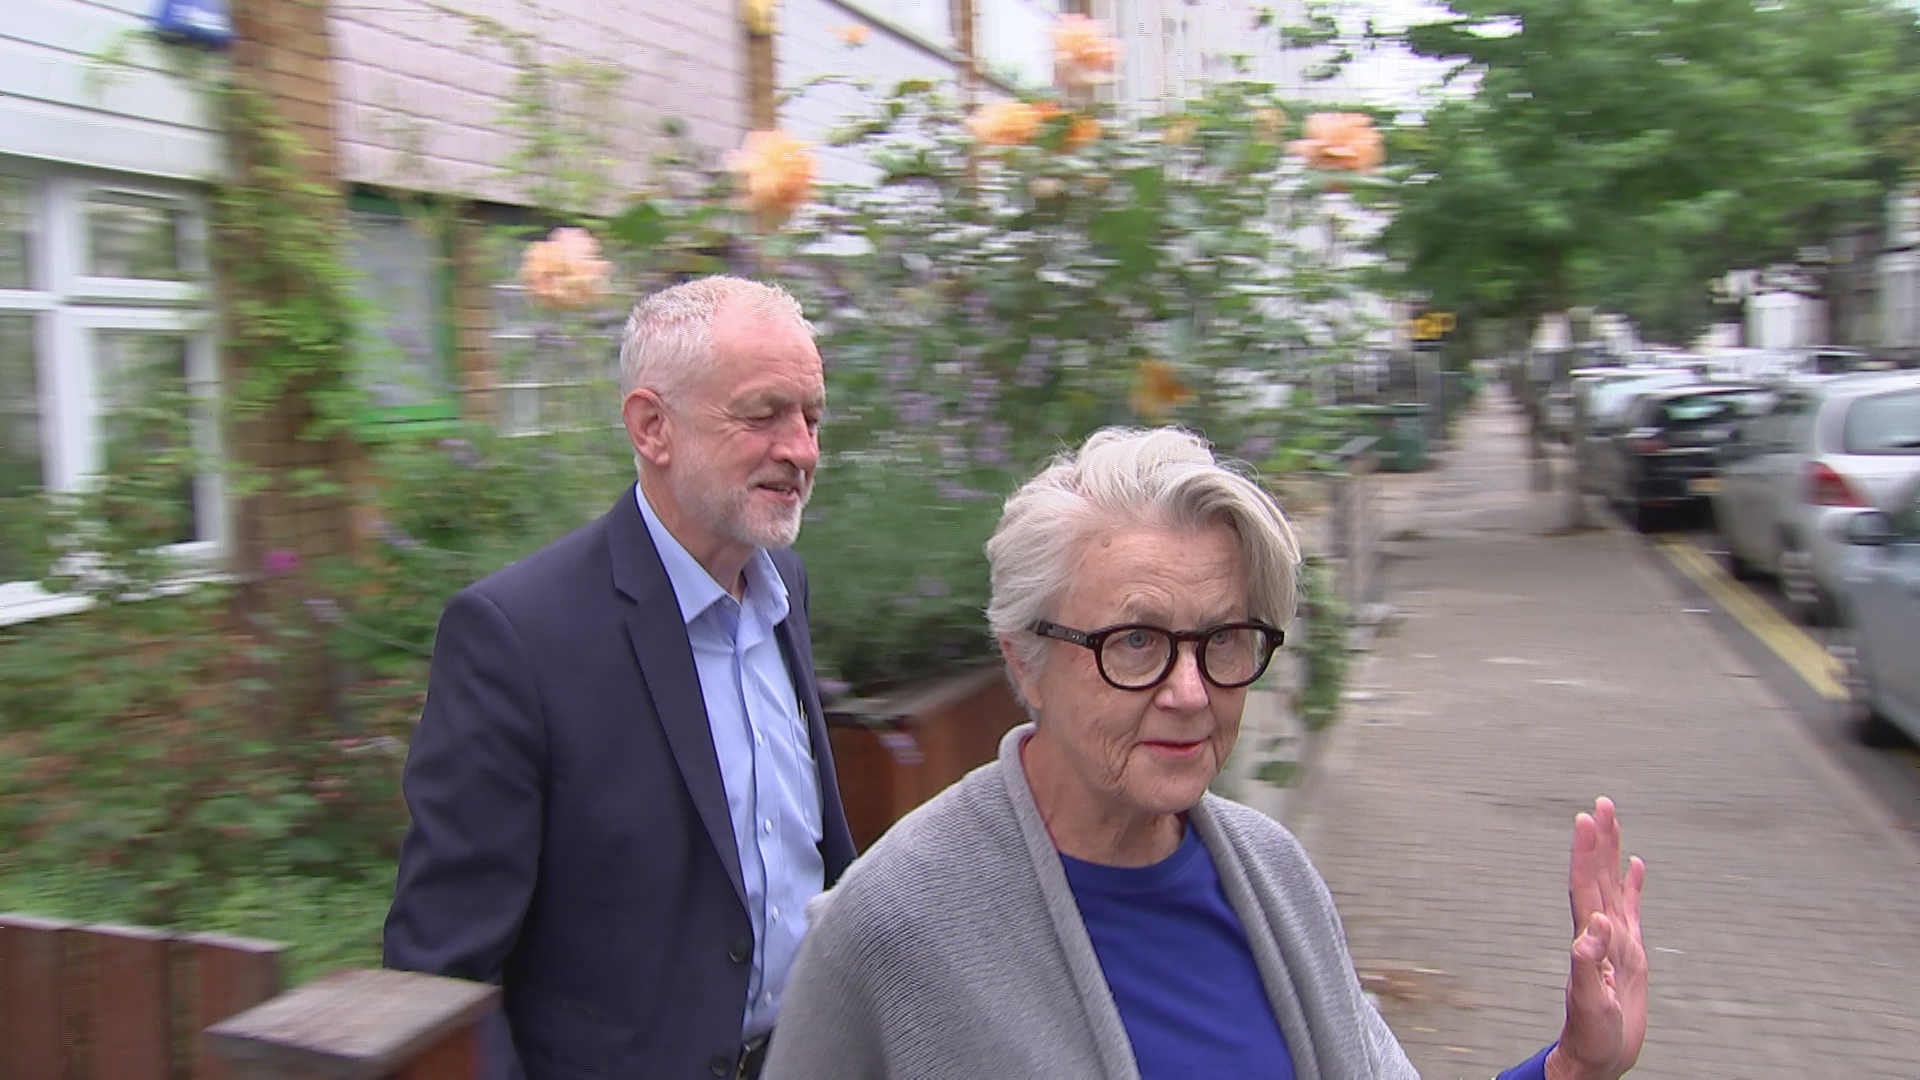 Jeremy Corbyn's Leadership Like 'Last Days Of Hitler', Says Shadow Brexit Minister